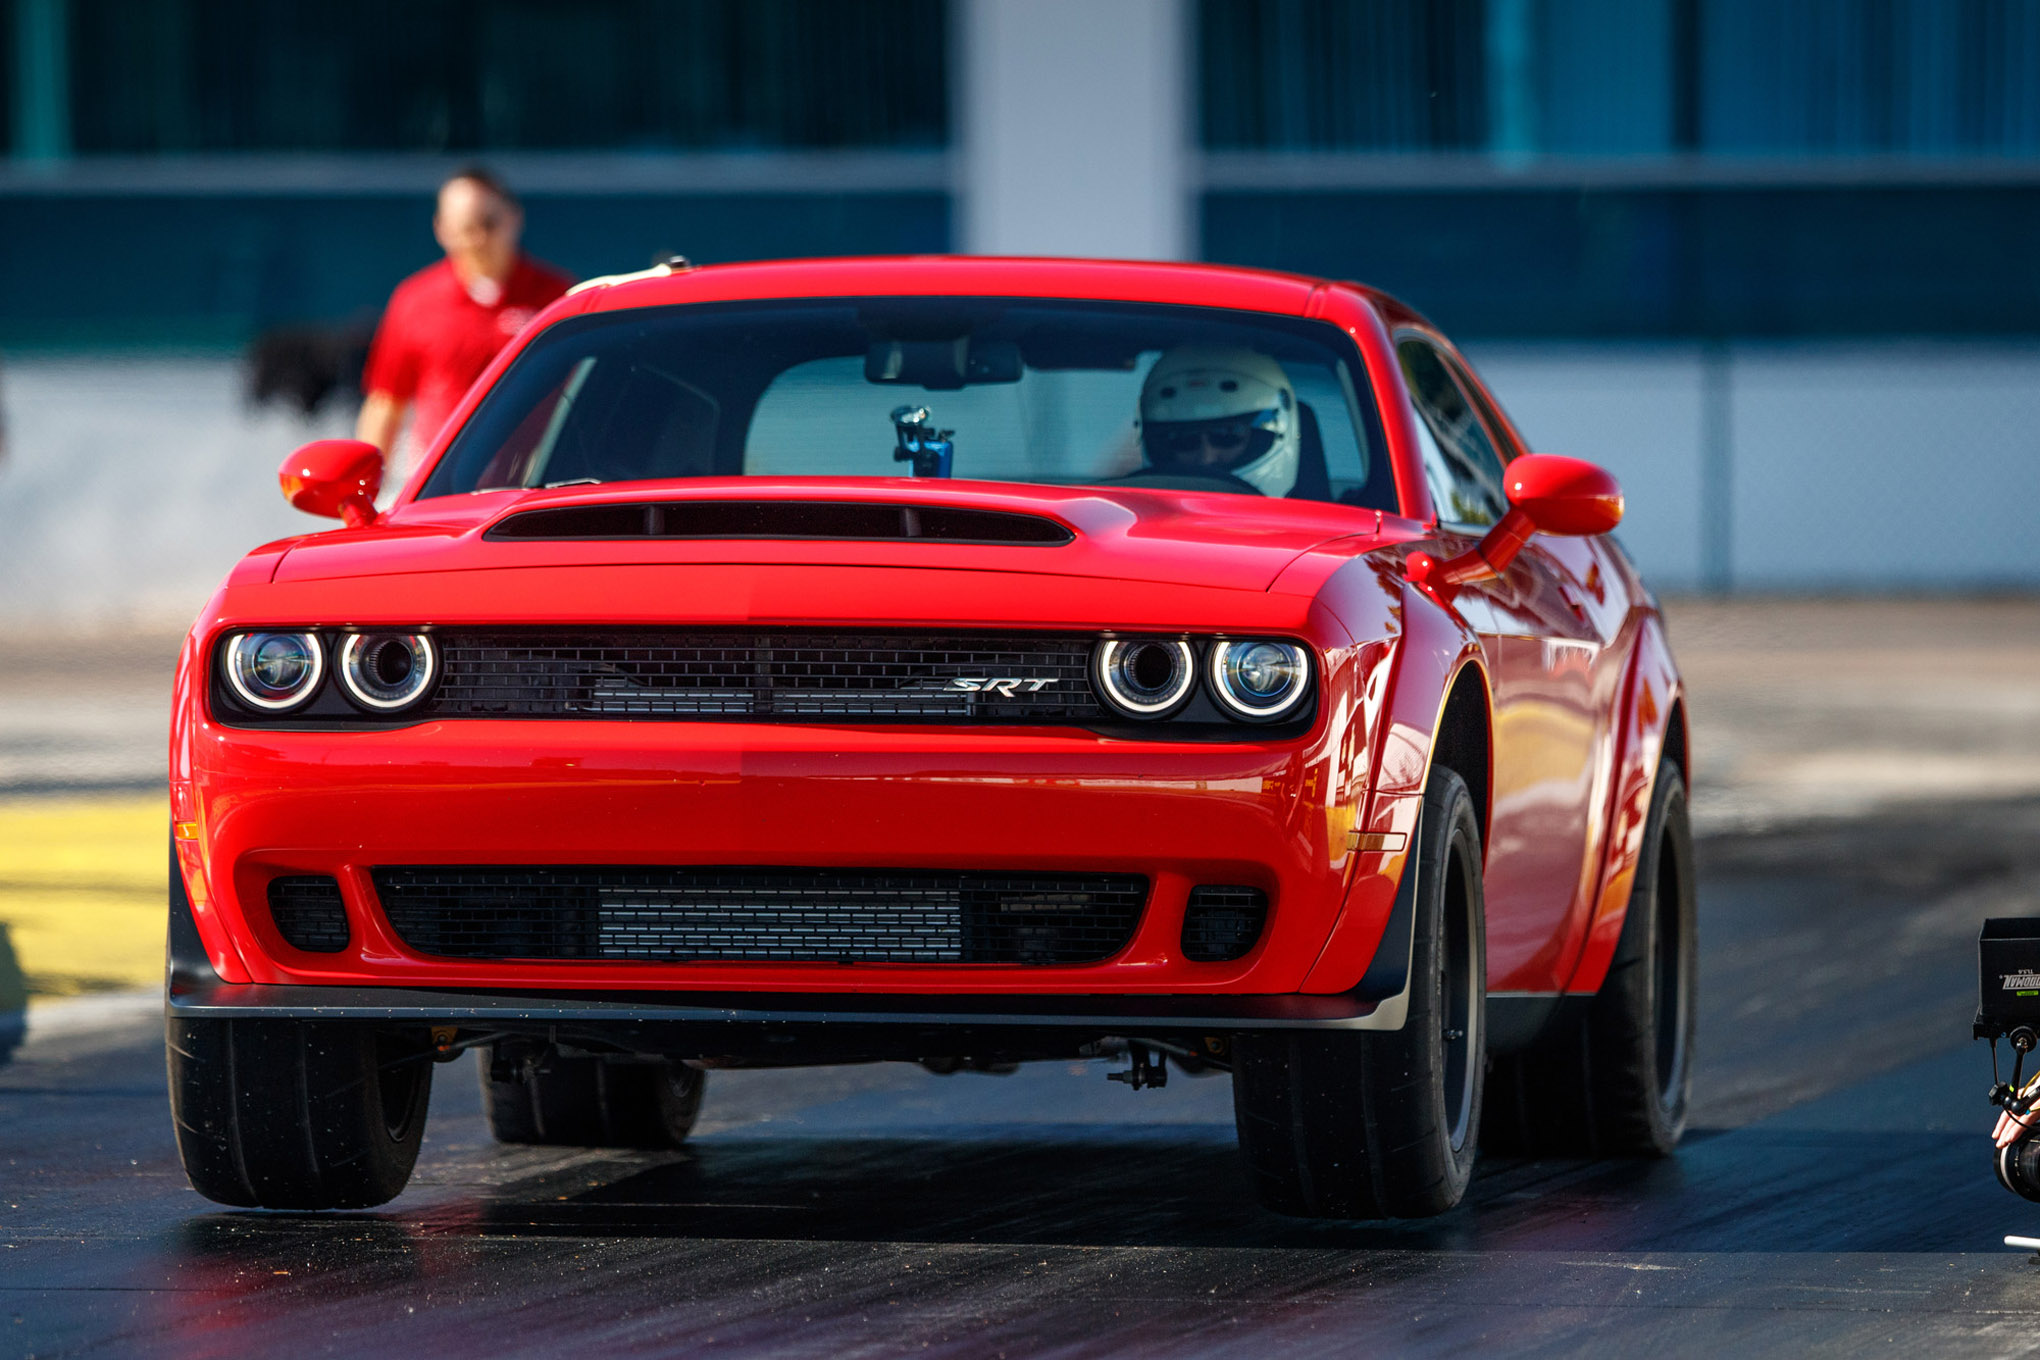 021-2018-dodge-demon.jpg